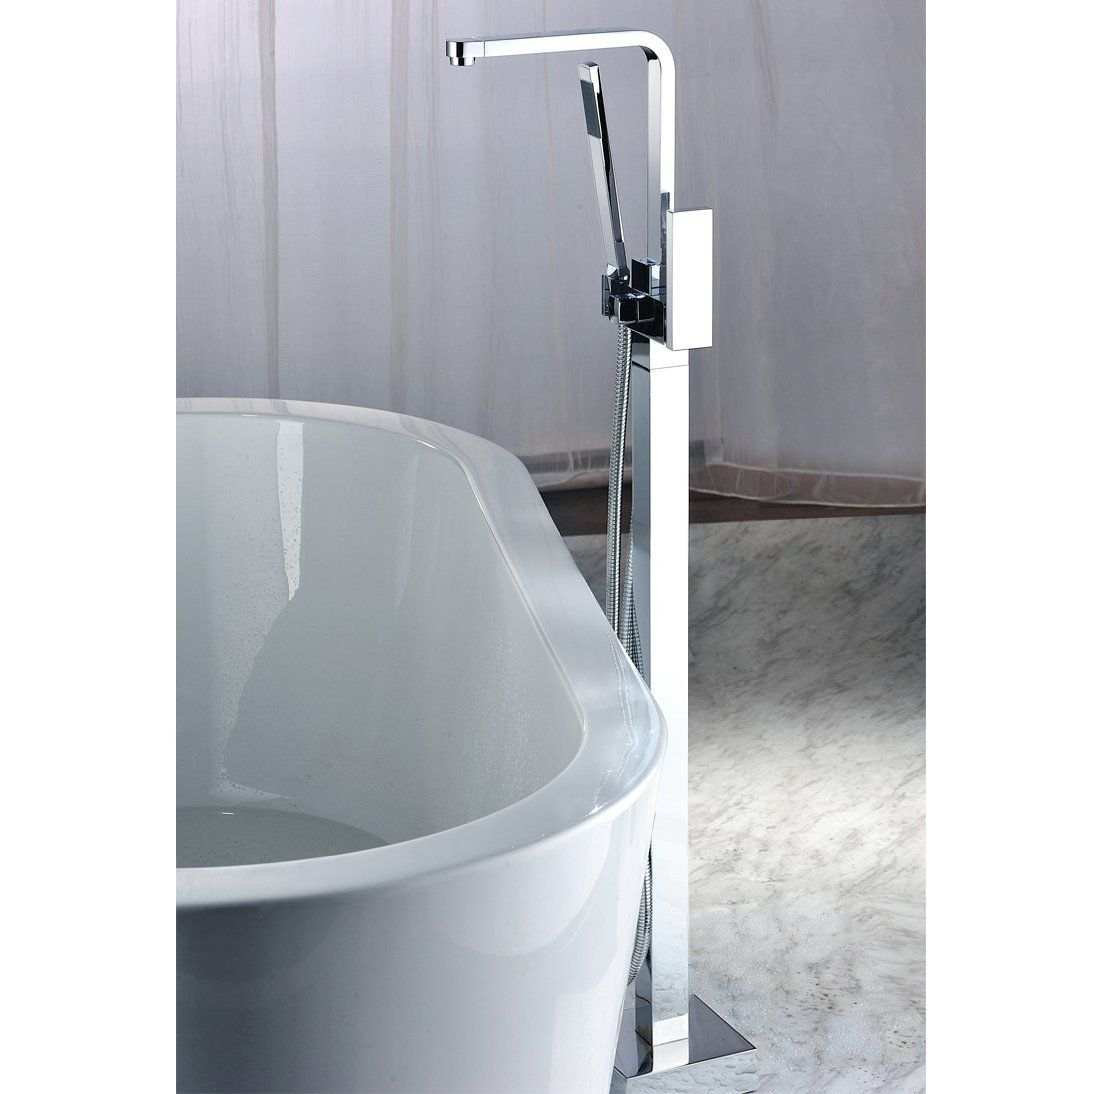 Floor-mounted Clawfoot Tub Filler Faucet includes Personal Hand ...